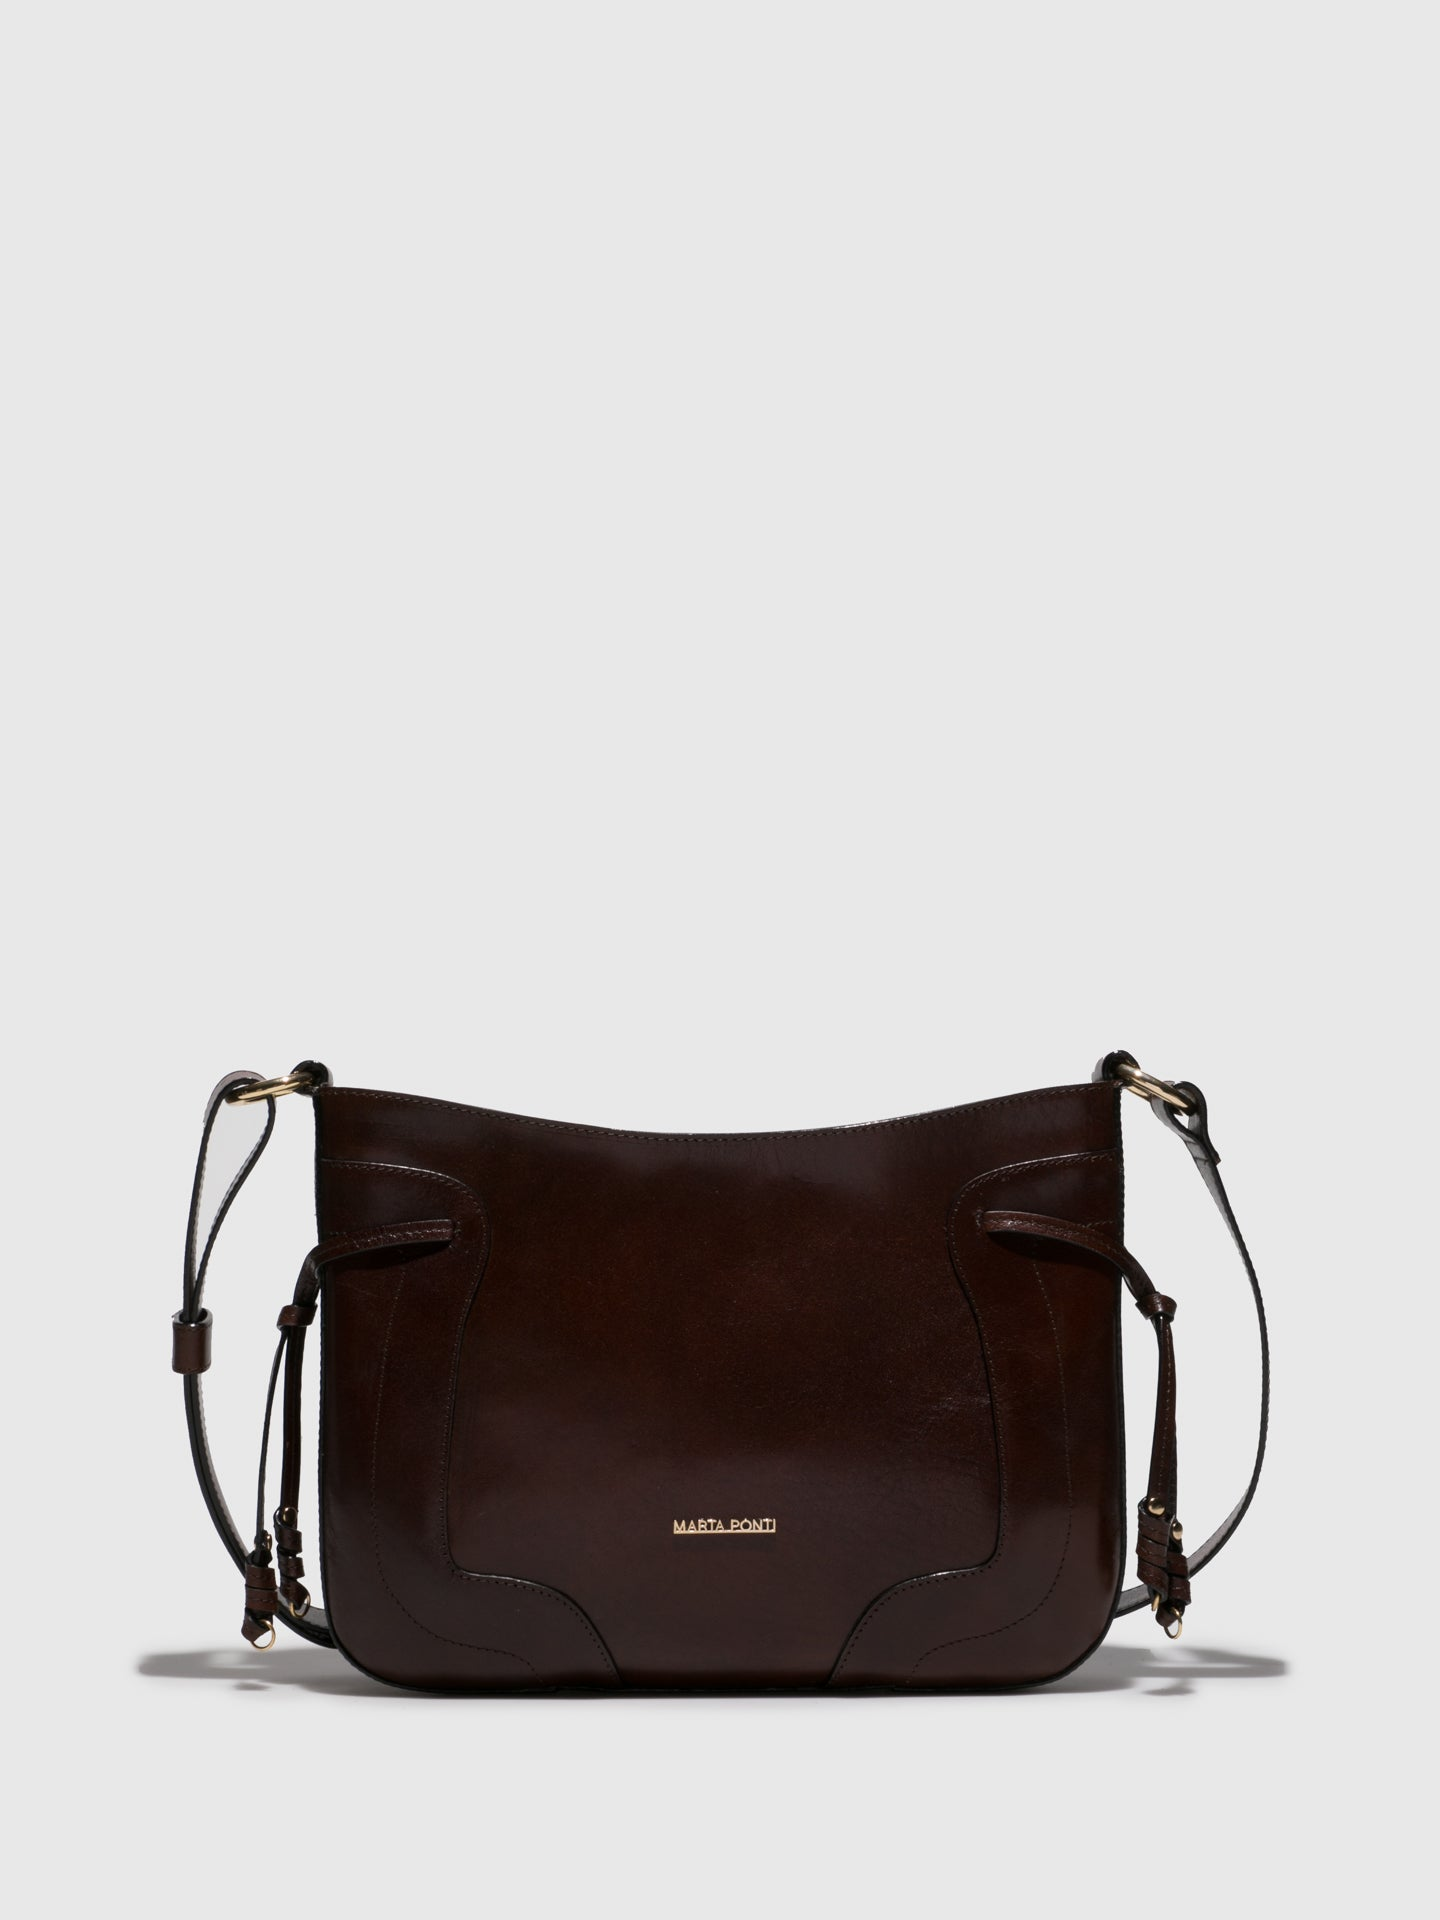 MARTA PONTI Chocolate Crossbody Bag